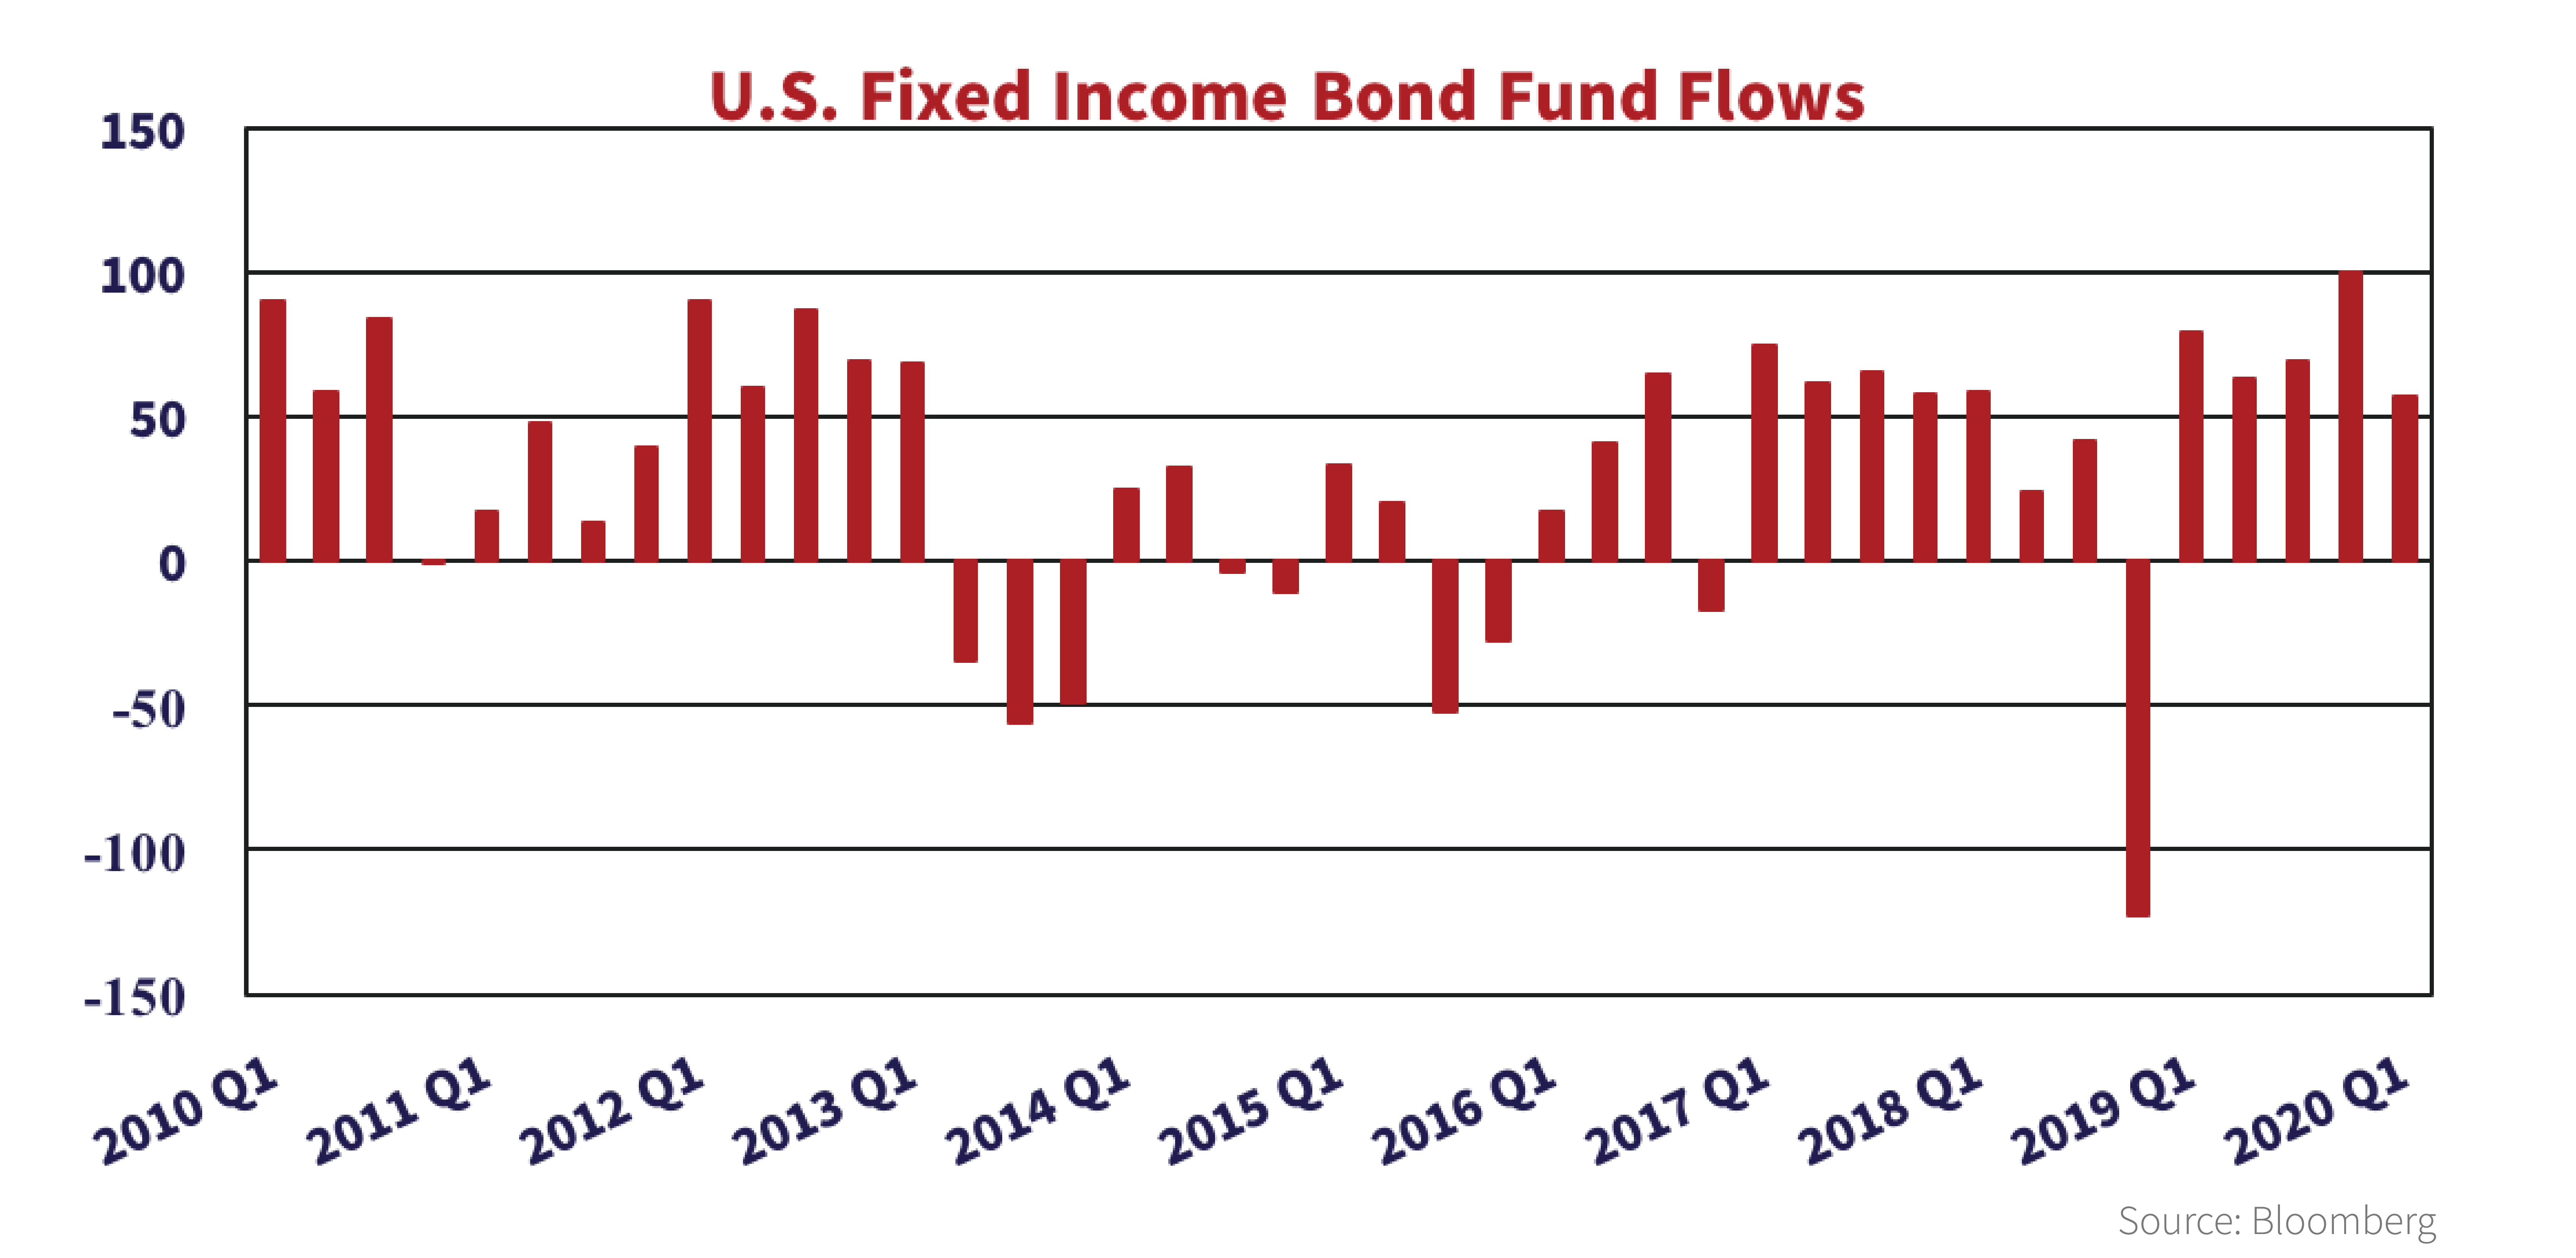 Bar graph showing the U.S. Fixed income bond fund flows from each first quarter from the years 2010 to 2020.